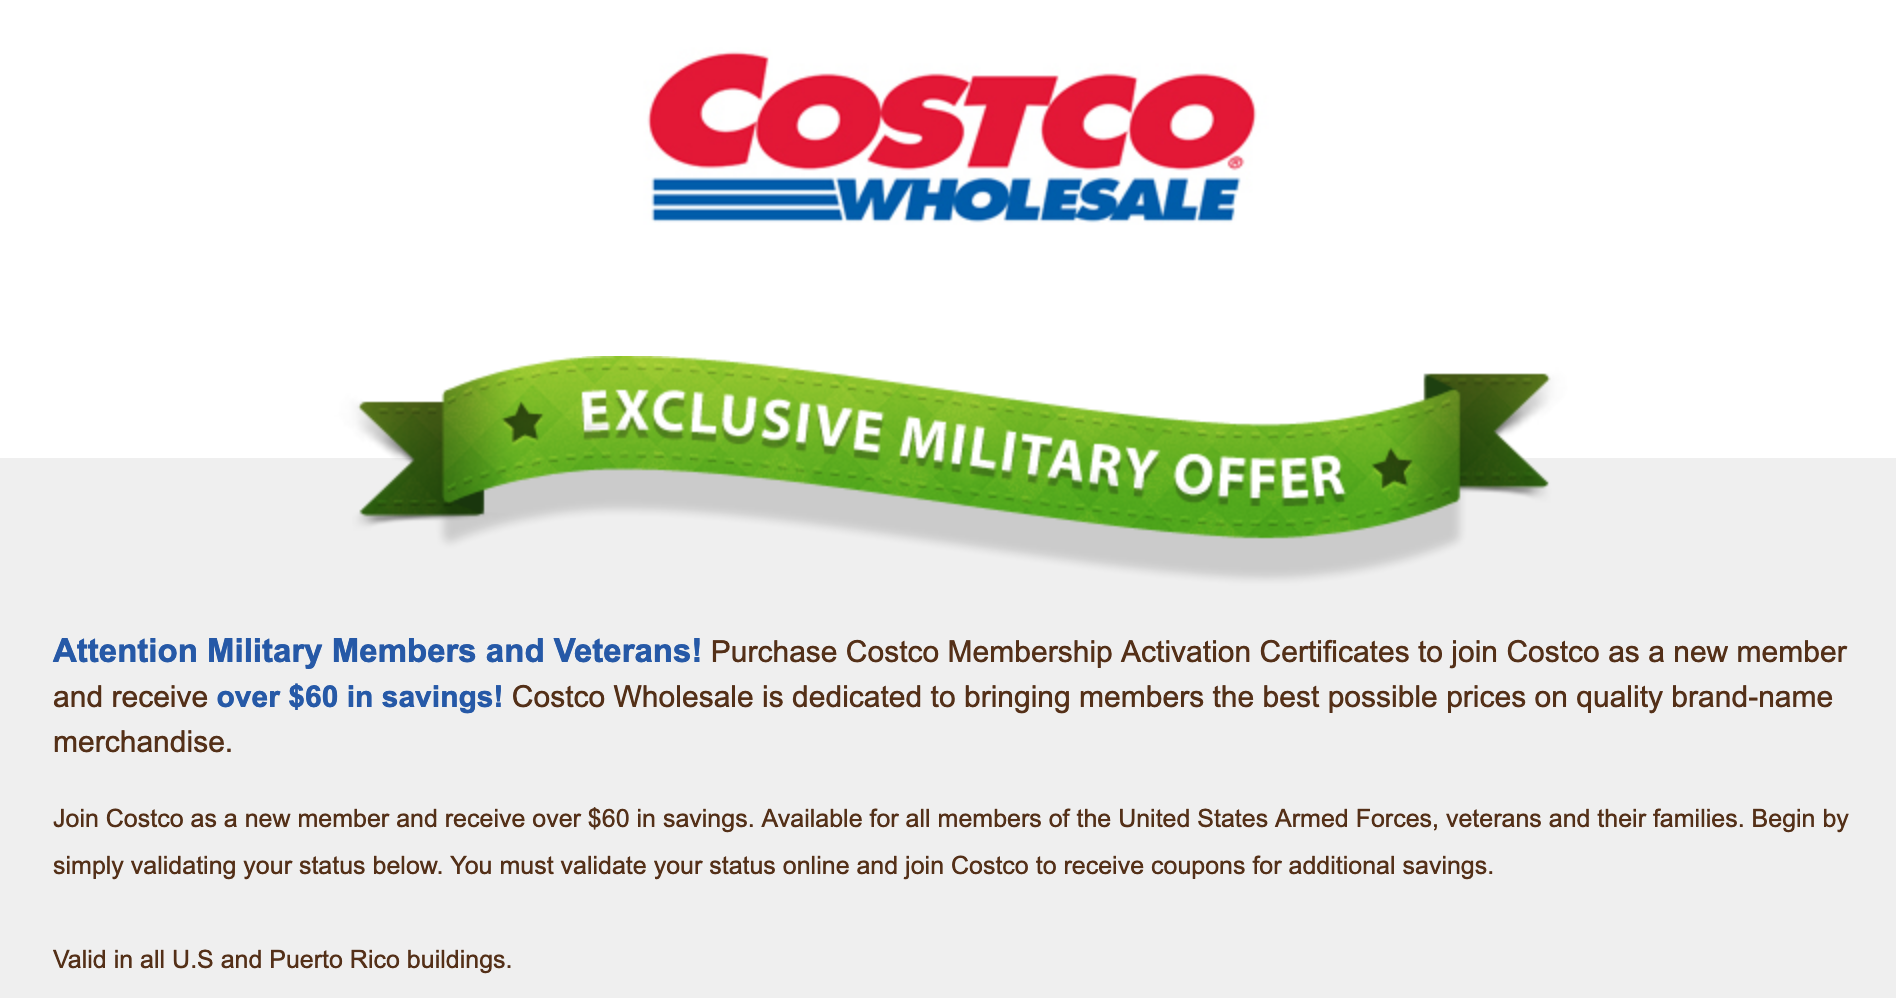 Costco Military Veteran Discounts